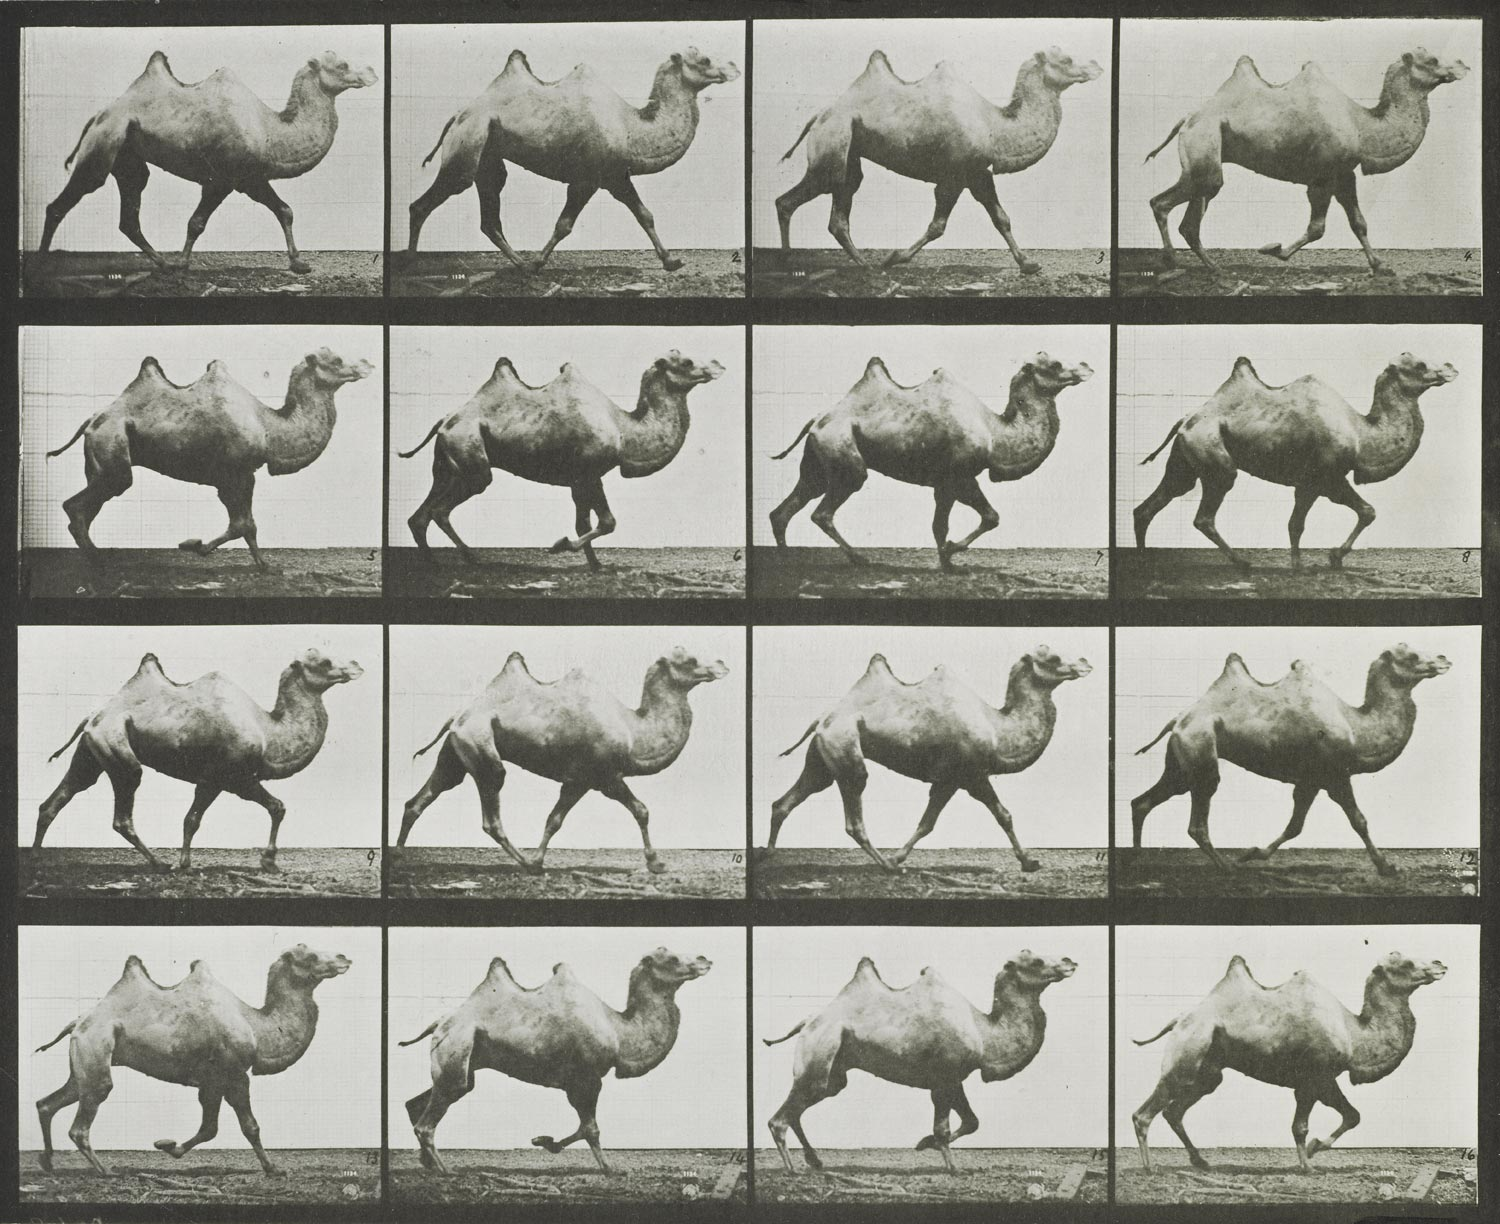 series of 16 images showing the movement of a camel while trotting